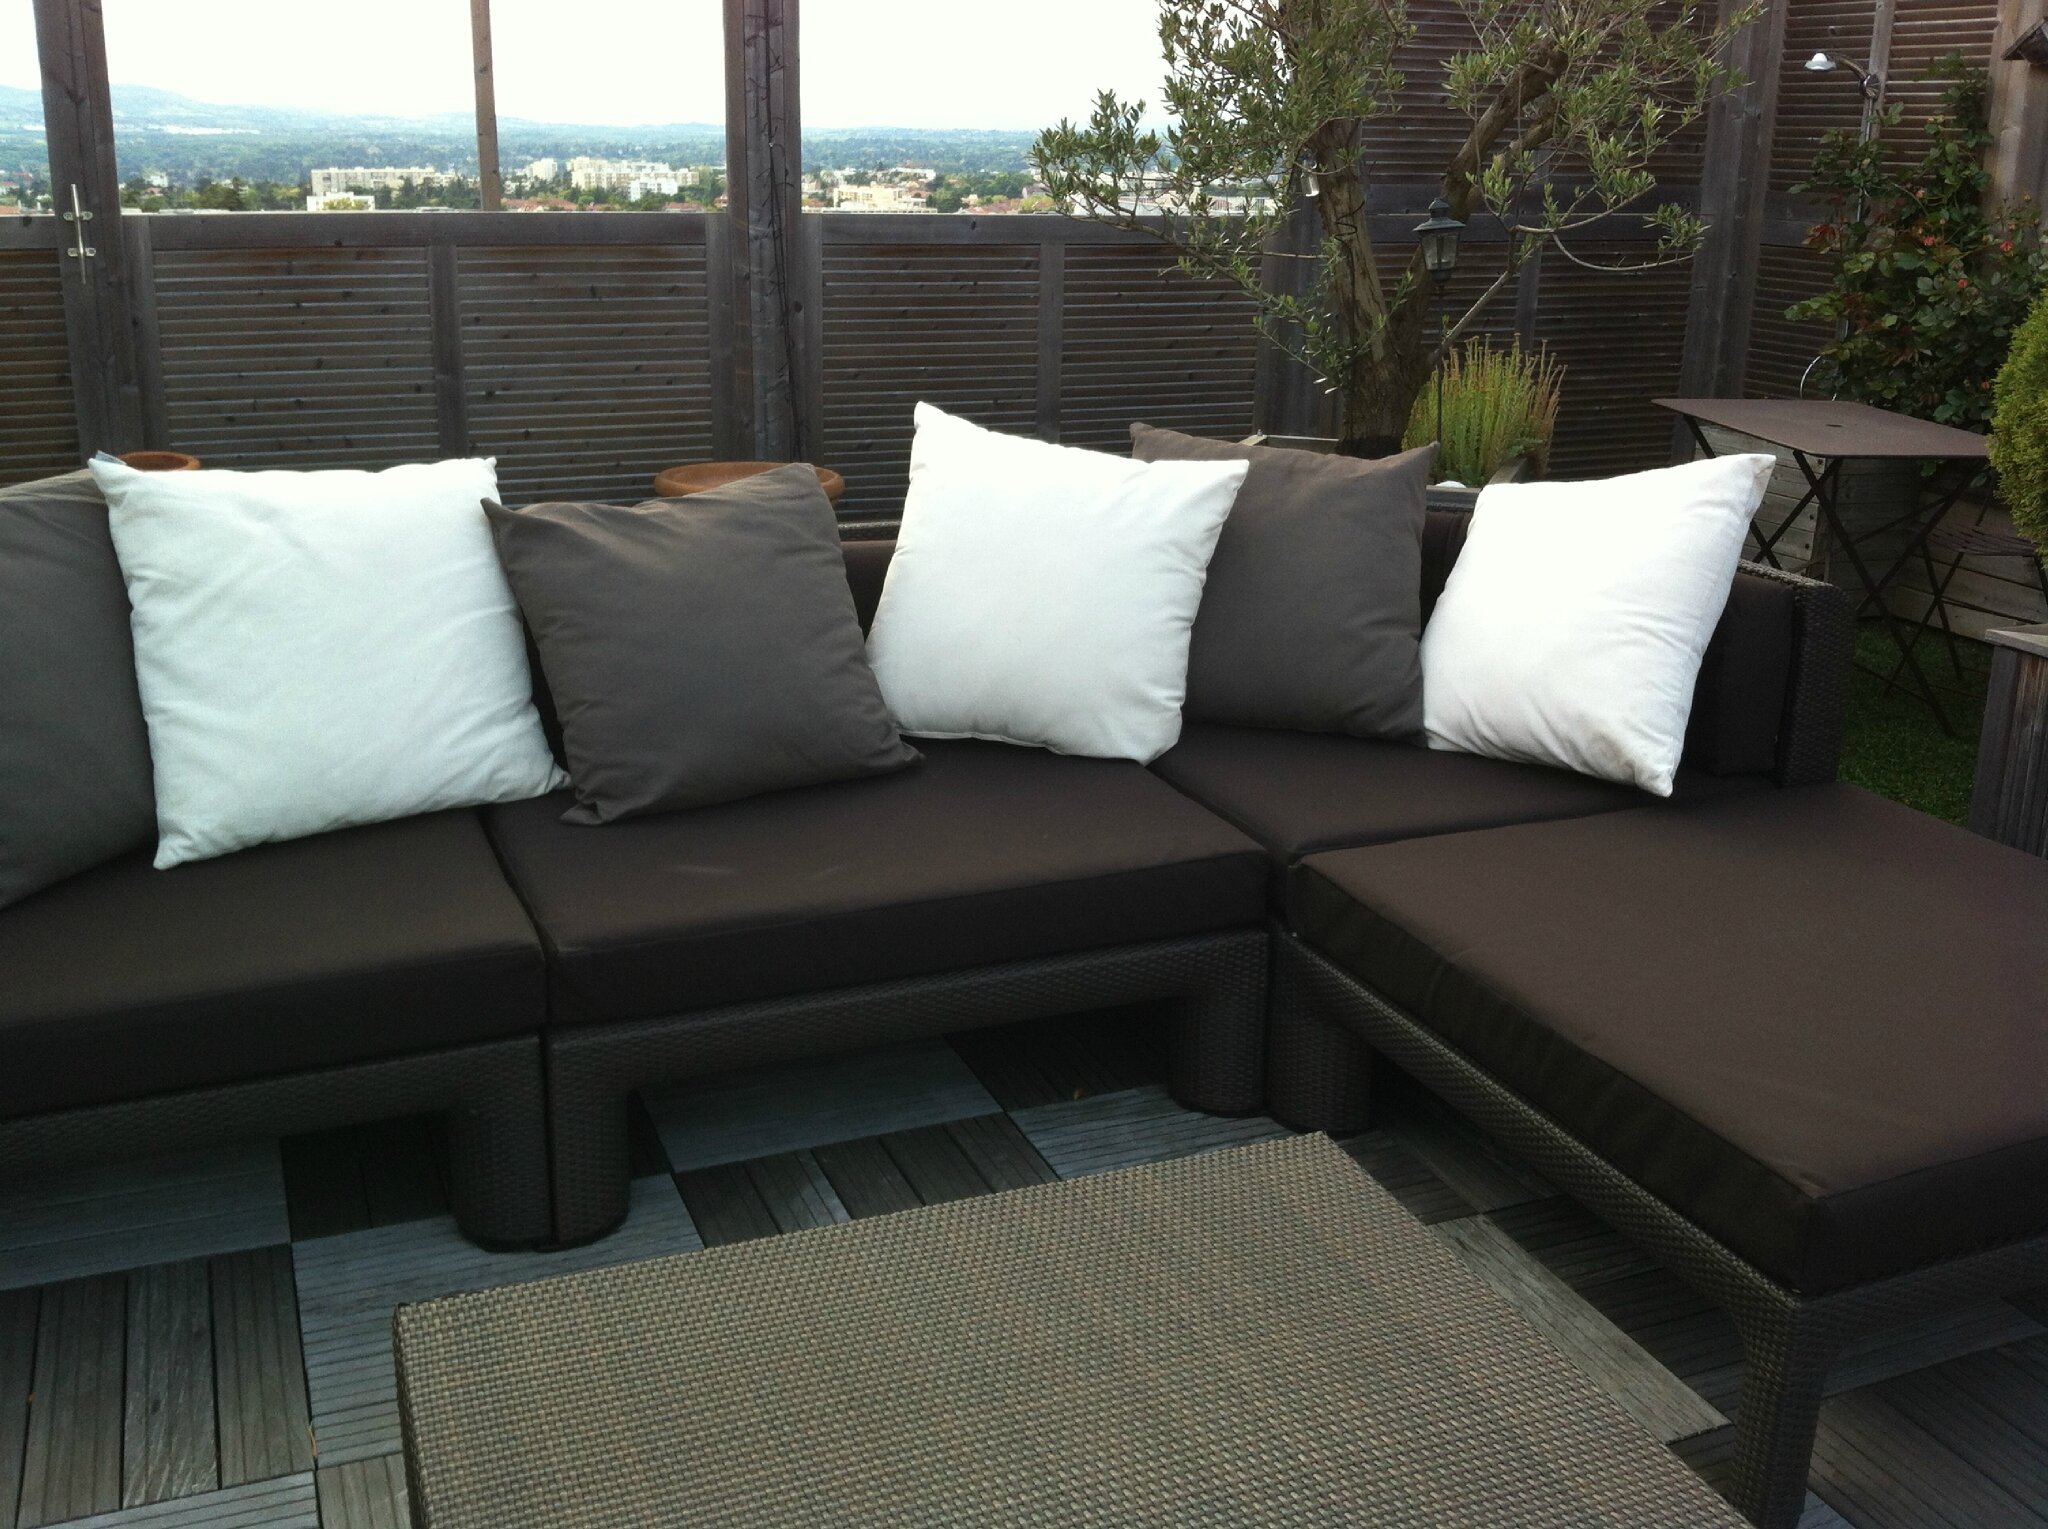 Housse canape sur terrasse atelier virginie morel at home for Housse pour divan